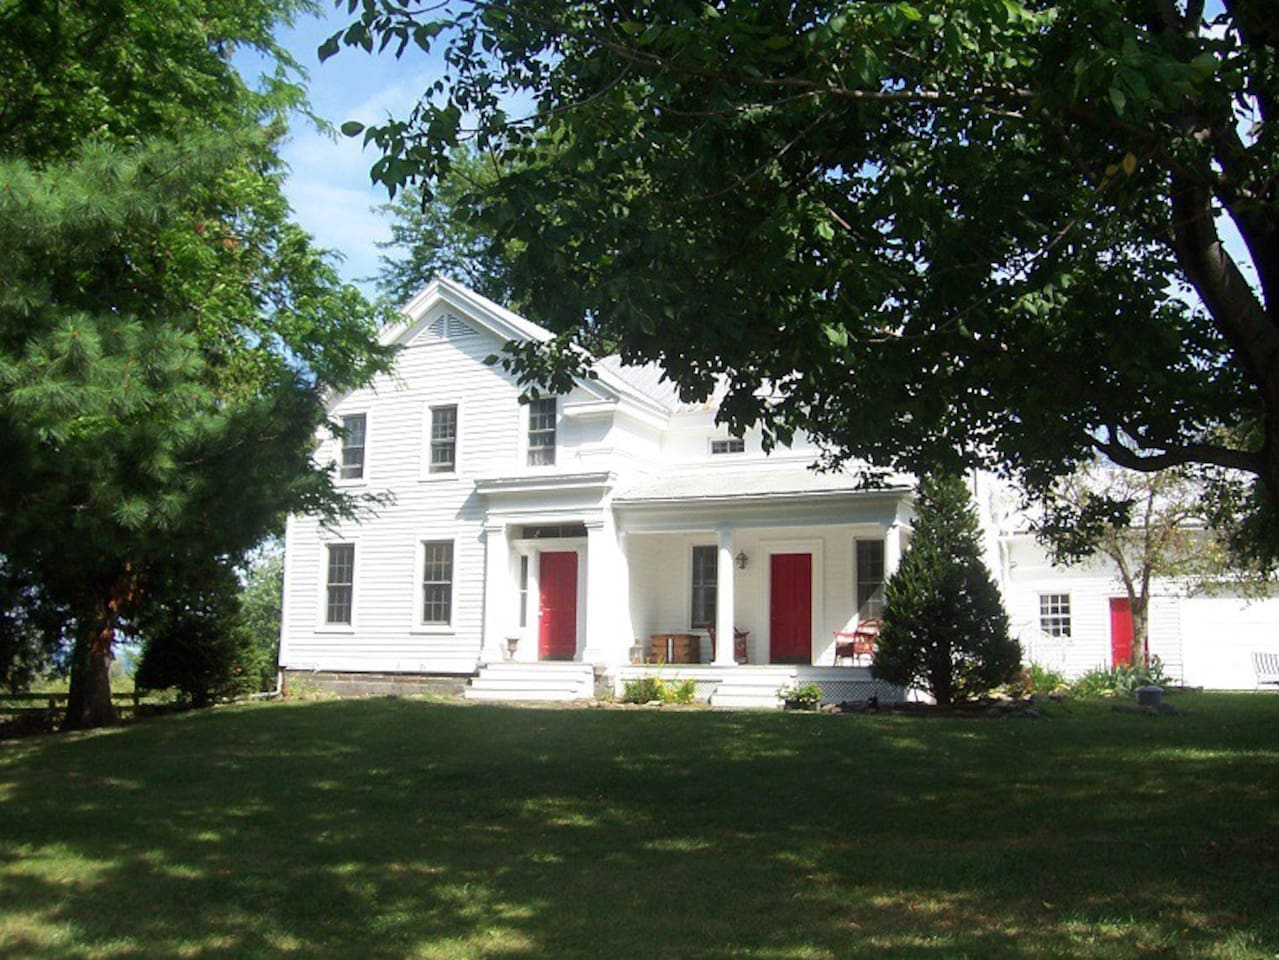 Our historic 1845 Greek Revival farmhouse on a beautiful summer day. We are an Airbnb Superhost and we have earned a 2015 Certificate of Excellence from Tripadvisor and we are a Tripadvisor GreenLeader.